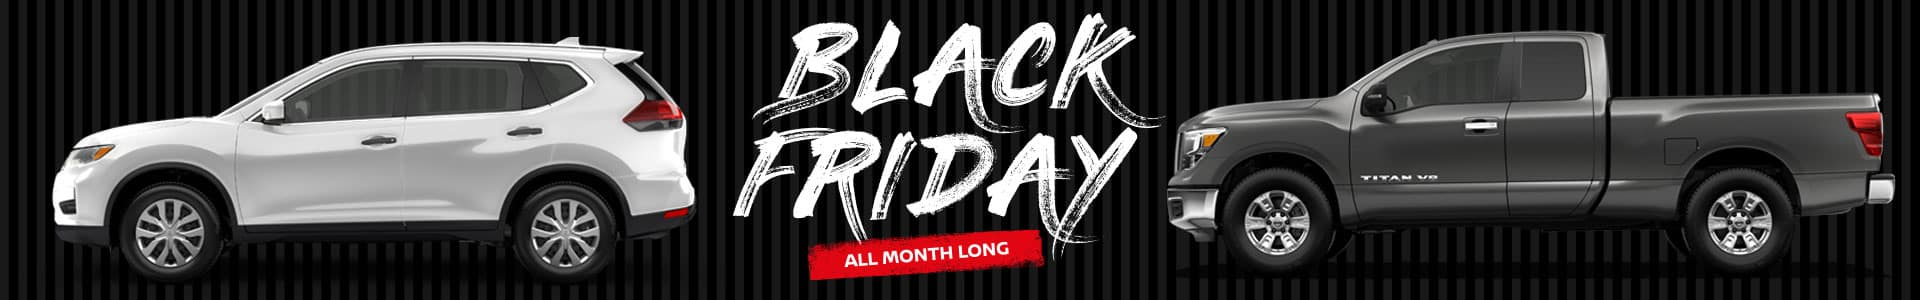 Newton Nissan South Black Friday deals